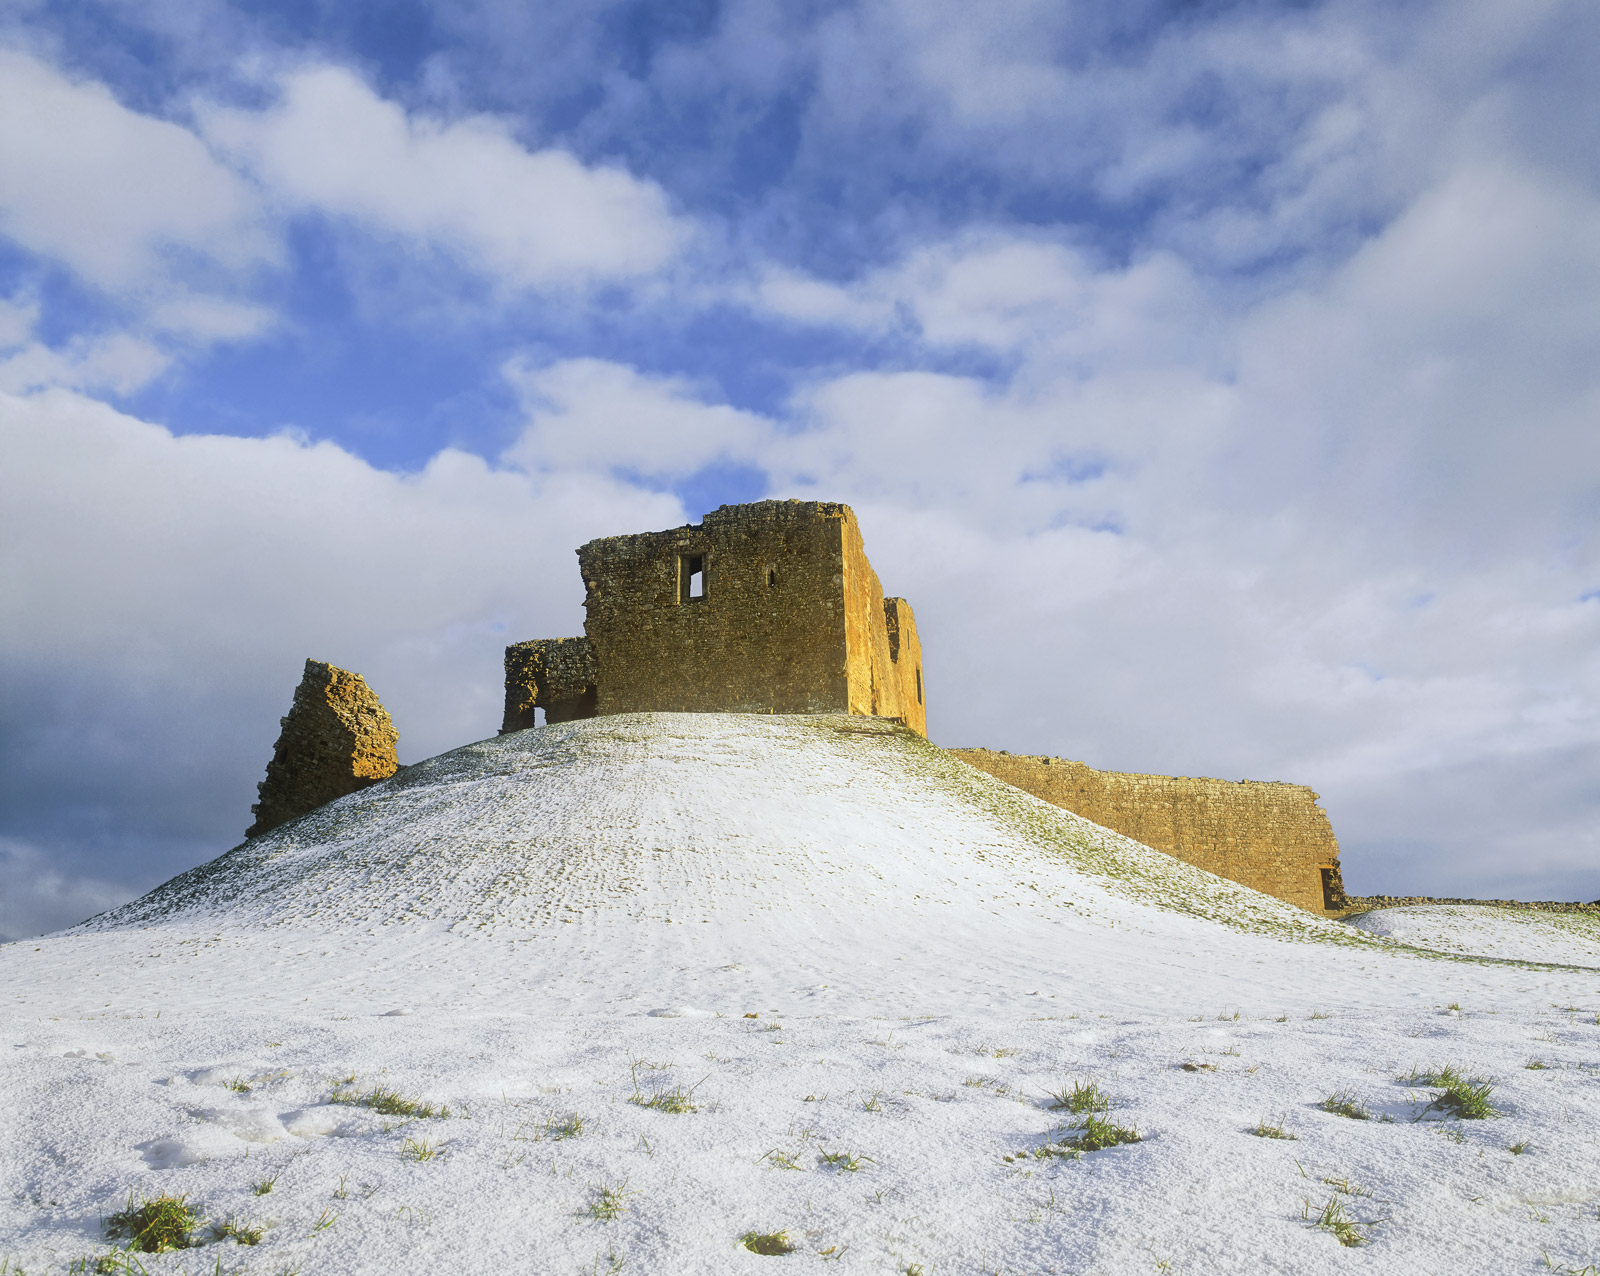 Duffus Castle has long been a favourite of mine - anything ruined gets my vote. In bright winter sunshine the castle looks...